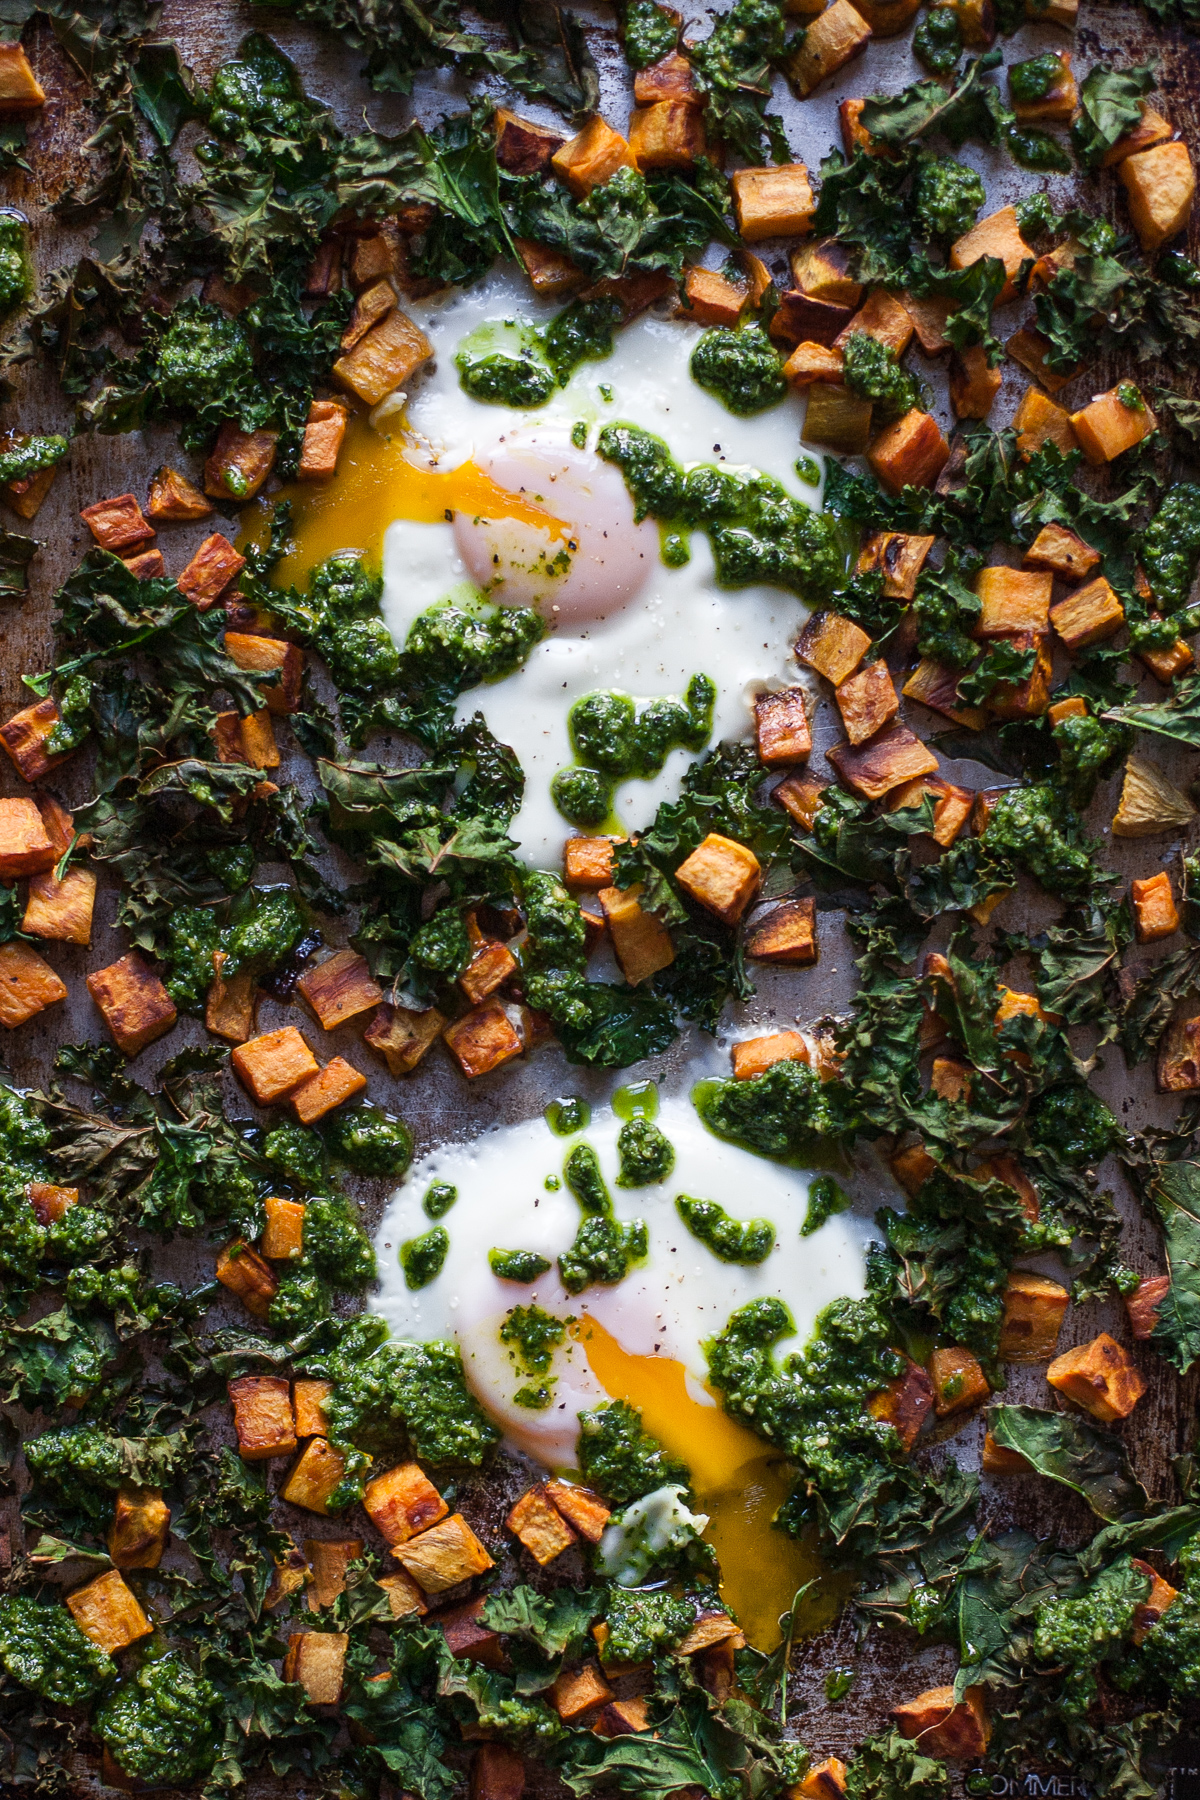 Sheet Pan Baked Eggs with Sweet Potatoes, Kale, & Cilantro-Pepita Pesto (Paleo, Whole30)